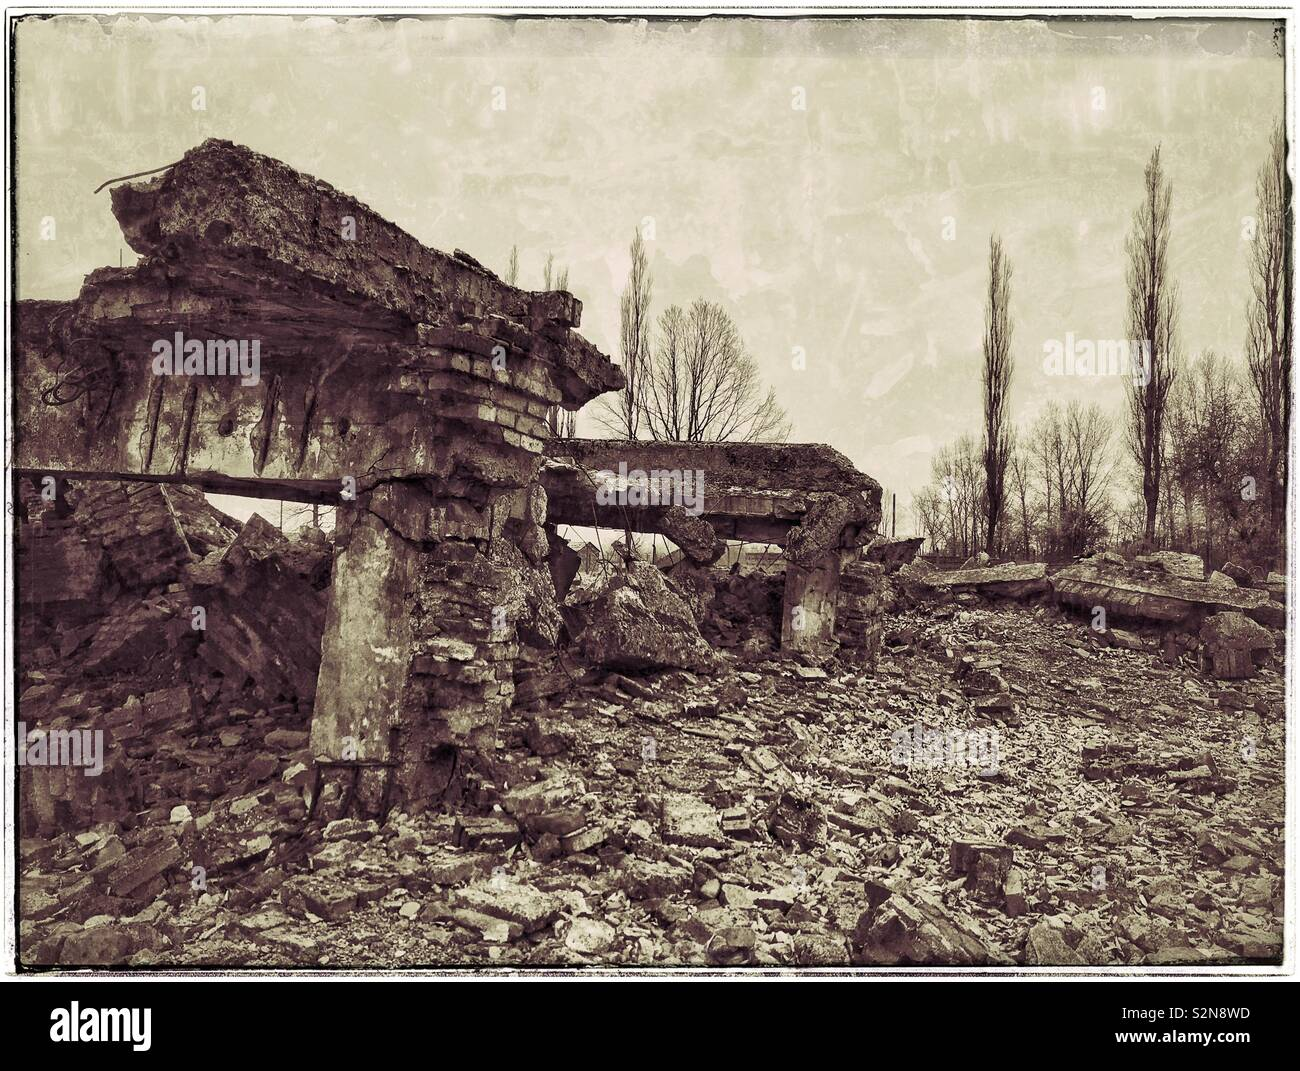 A retro effect image showing what remains of the infamous Gas chamber at the Nazi Auschwitz II-Birkenau Concentration Camp. Destroyed by the Nazis shortly before liberation by Soviet forces in 1945. - Stock Image